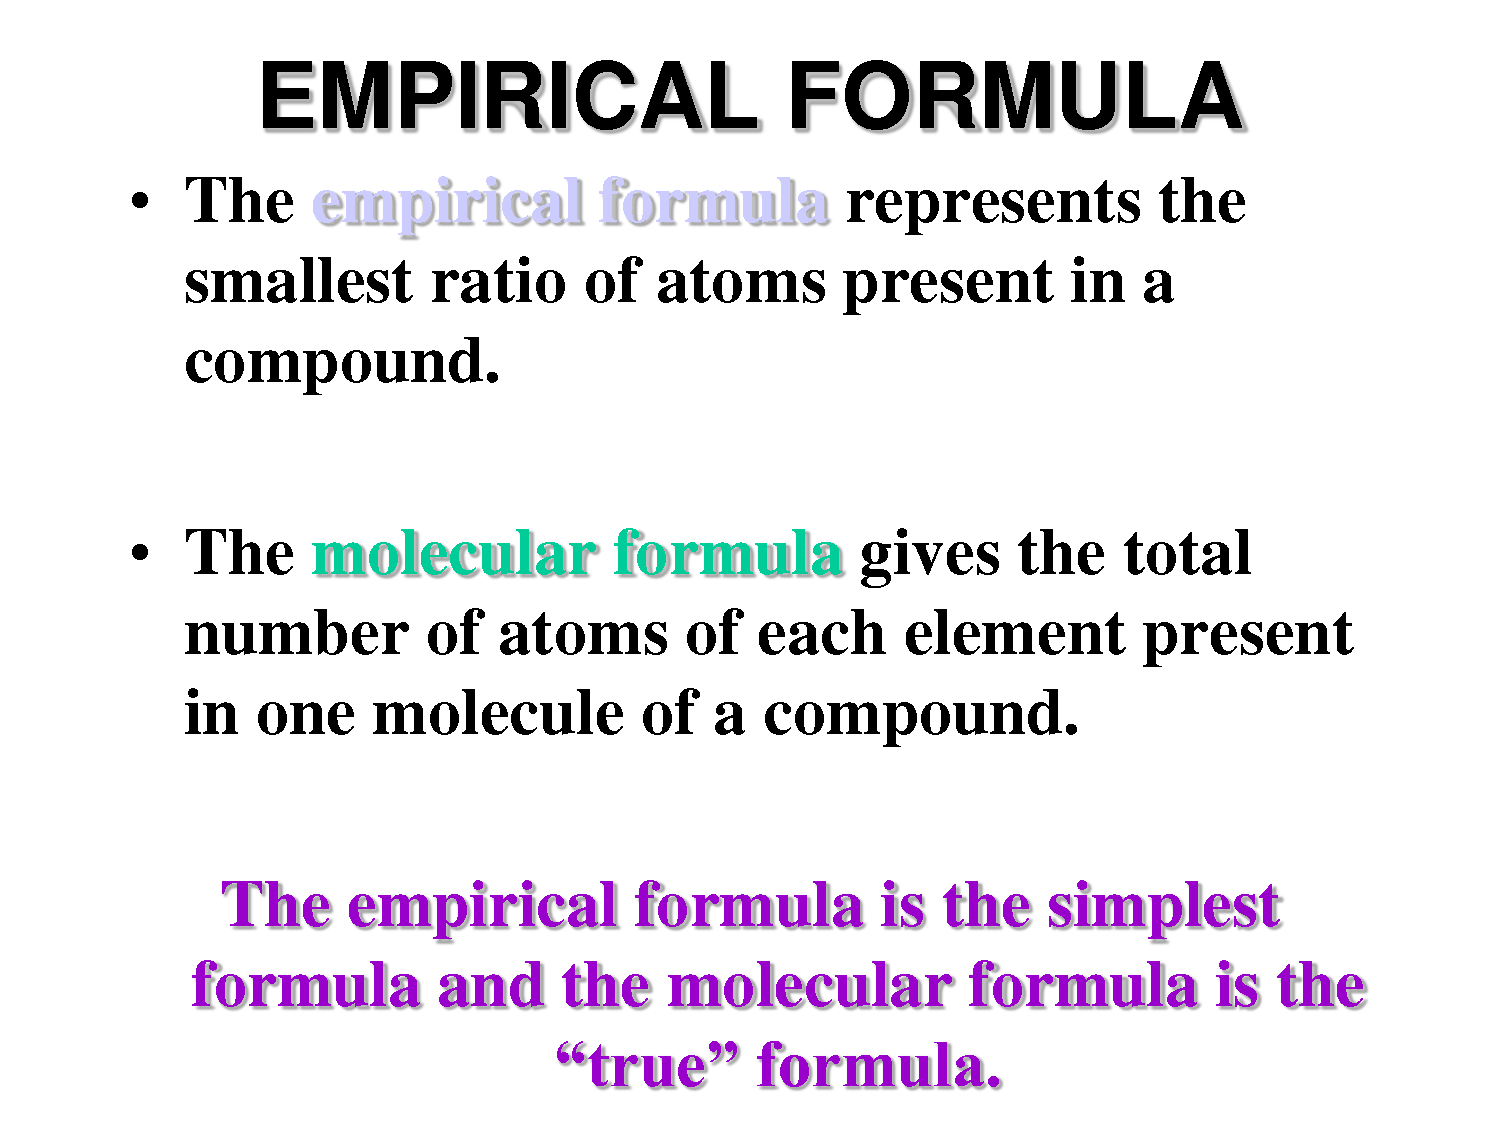 Chemt3am Weekly Reflections Week 23 Empirical Formulas